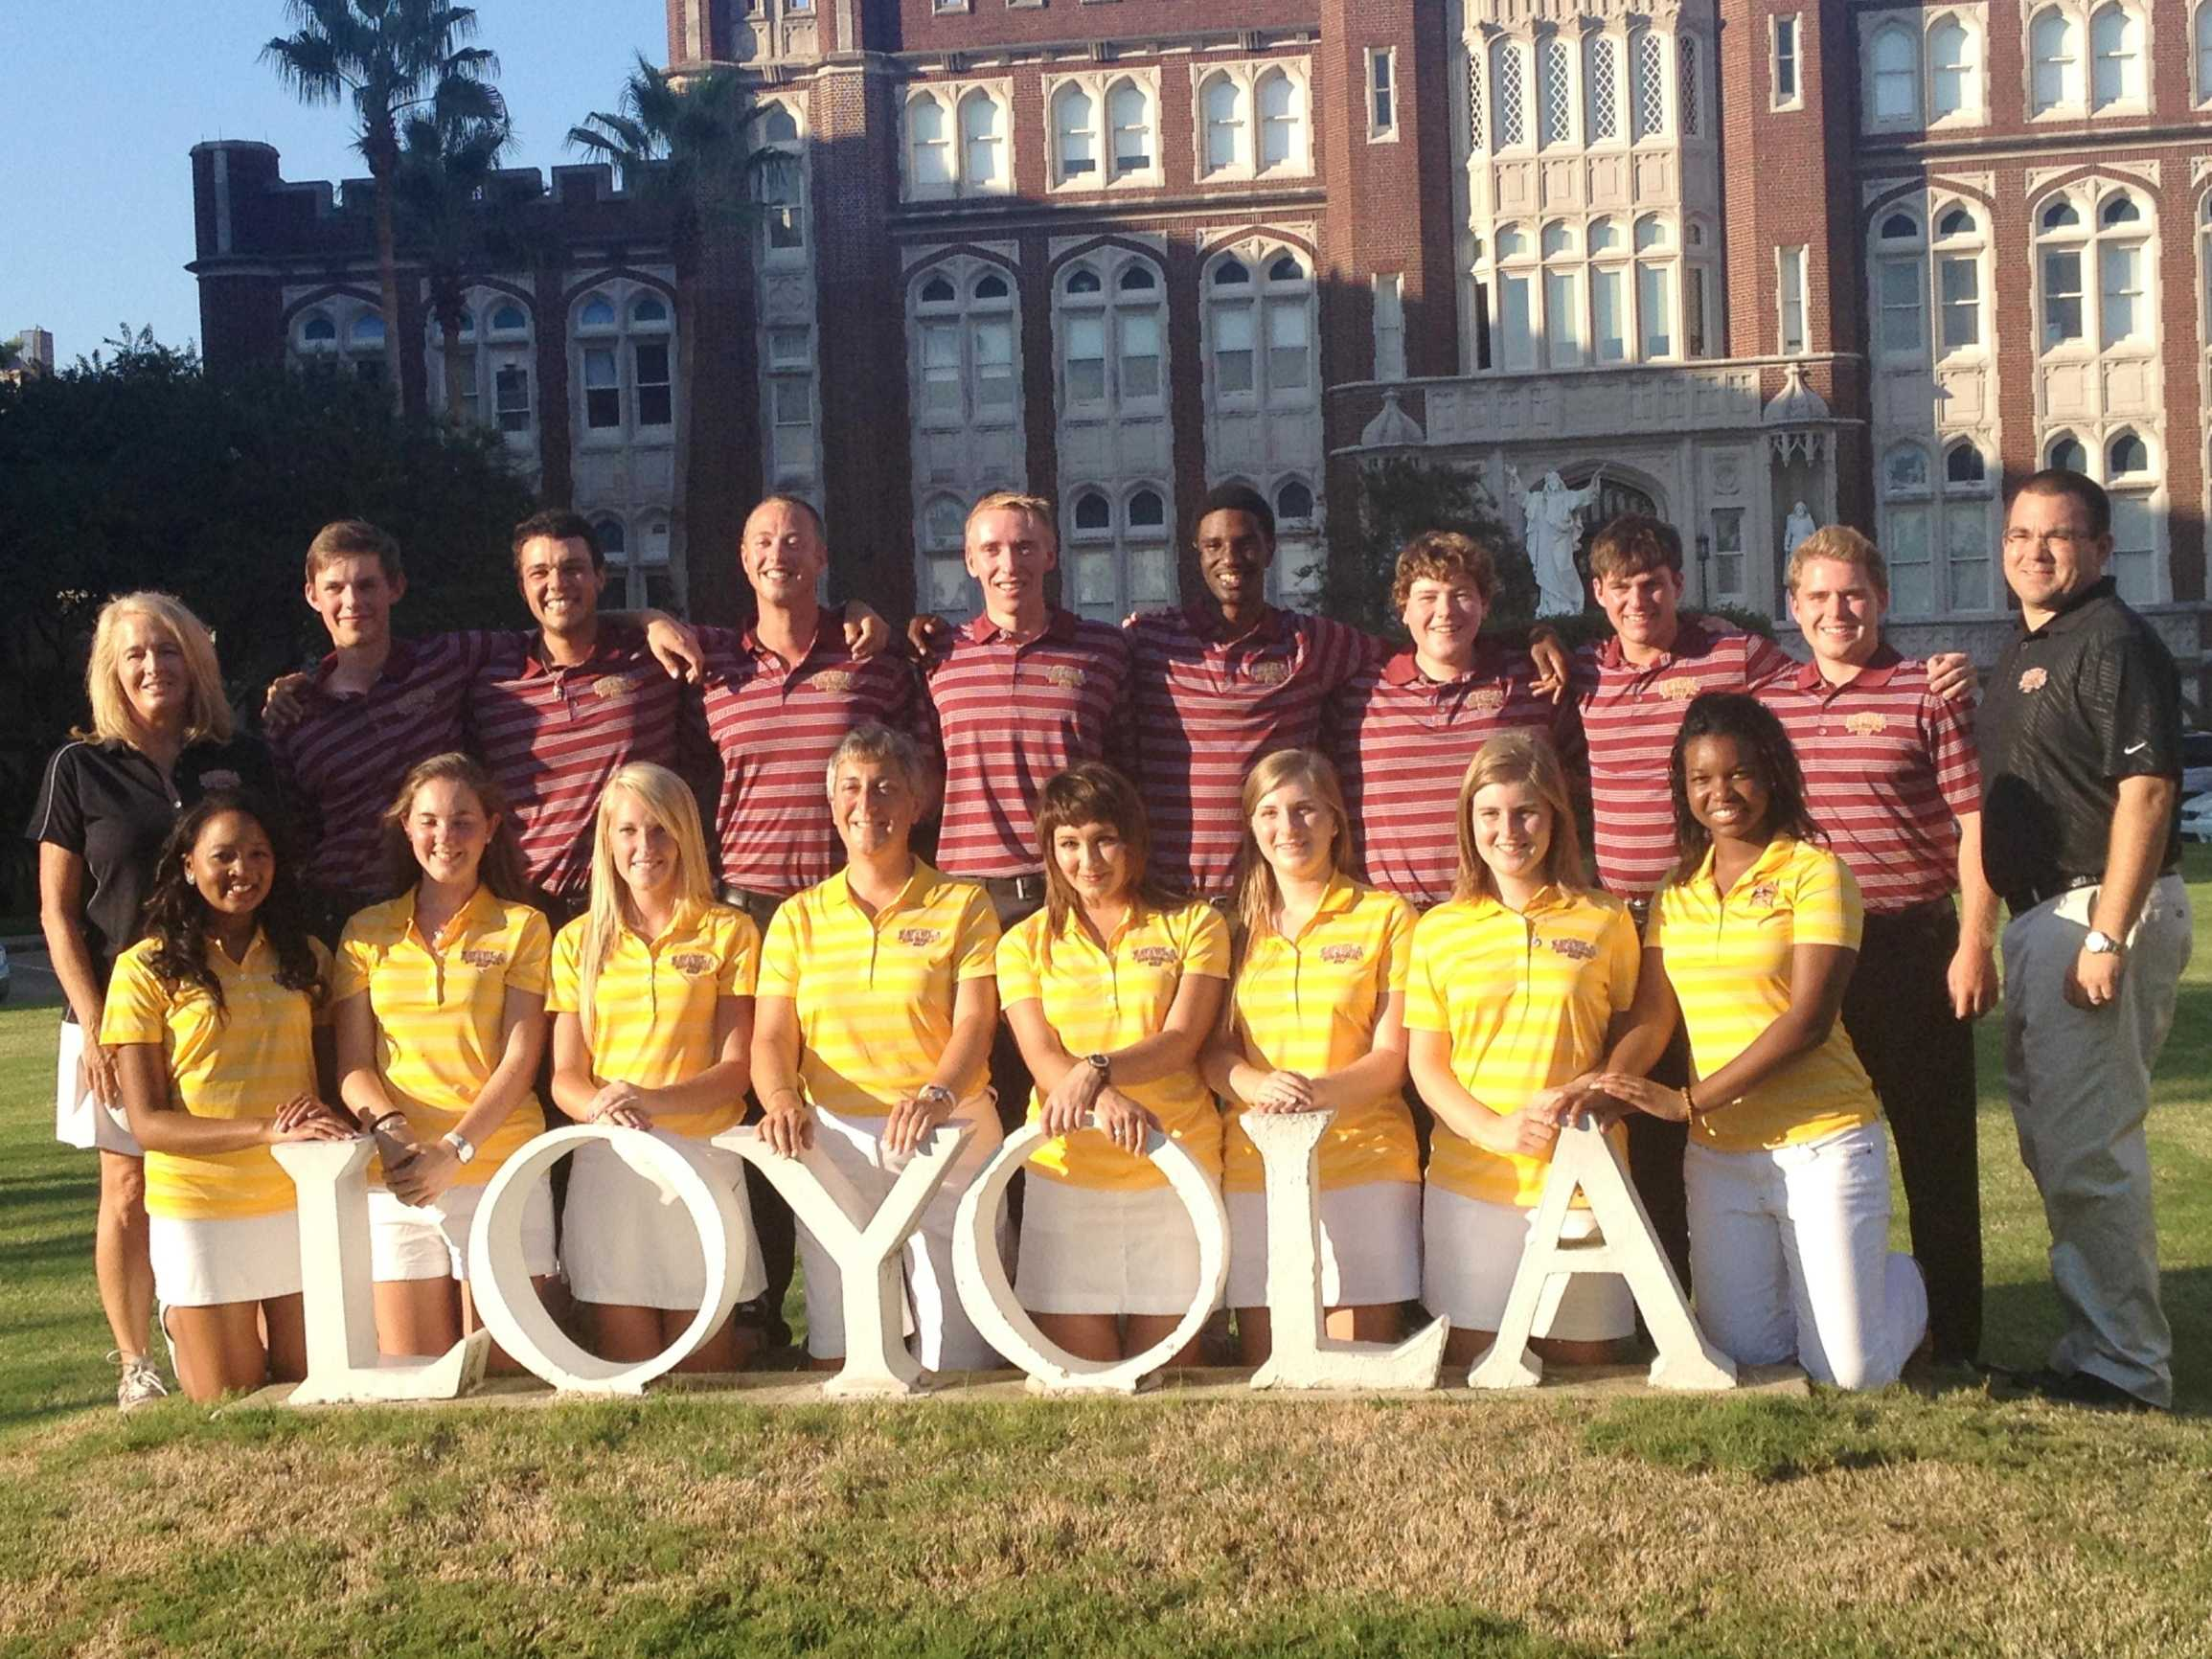 The men's and women's golf teams pose together for a photo.  The newly-added men's team will compete in the spring semester